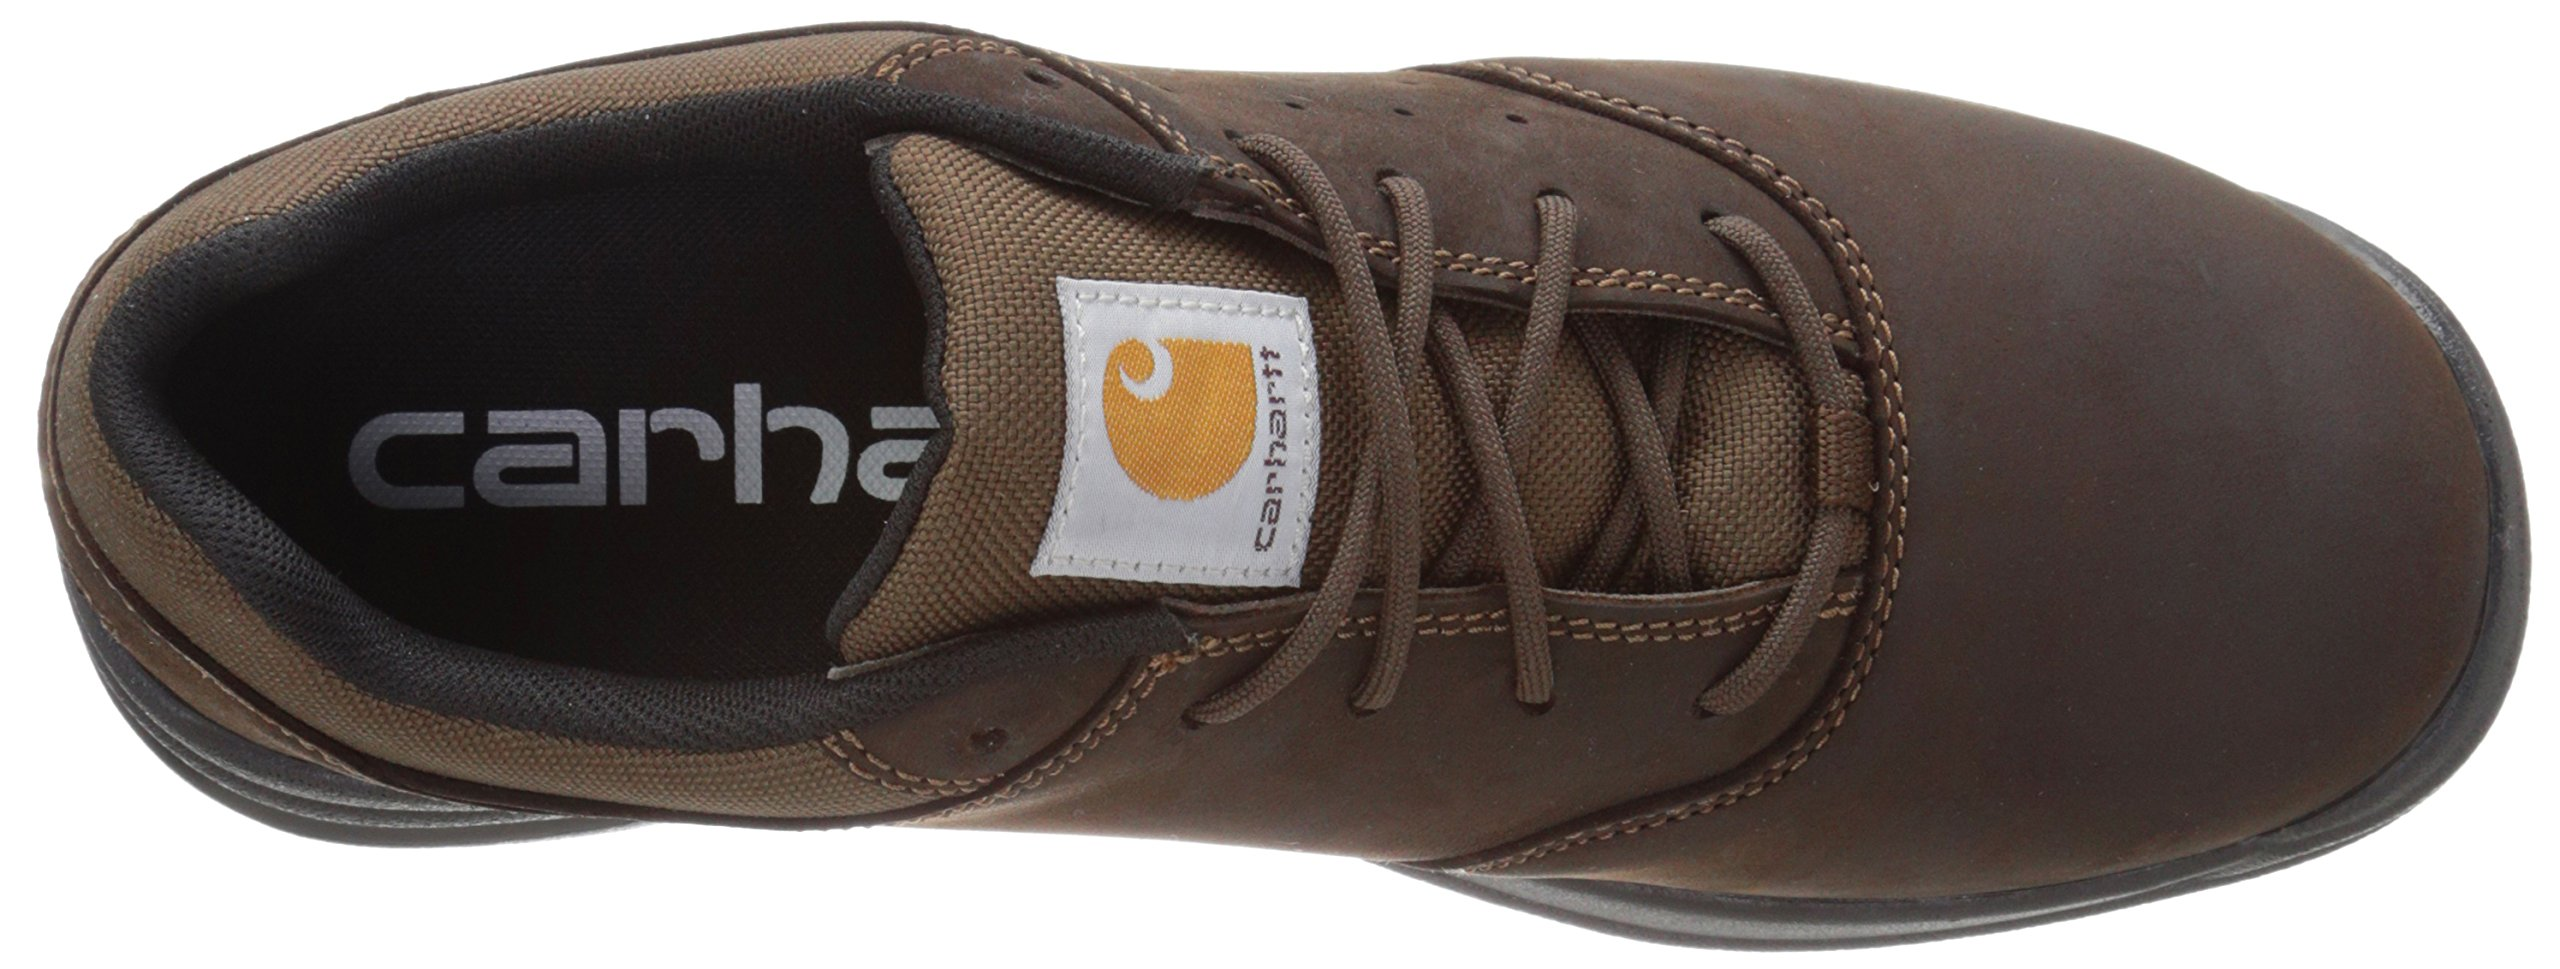 Carhartt Men's CMO3040 Walking Oxford,Dark Brown, 13 M US by Carhartt (Image #8)